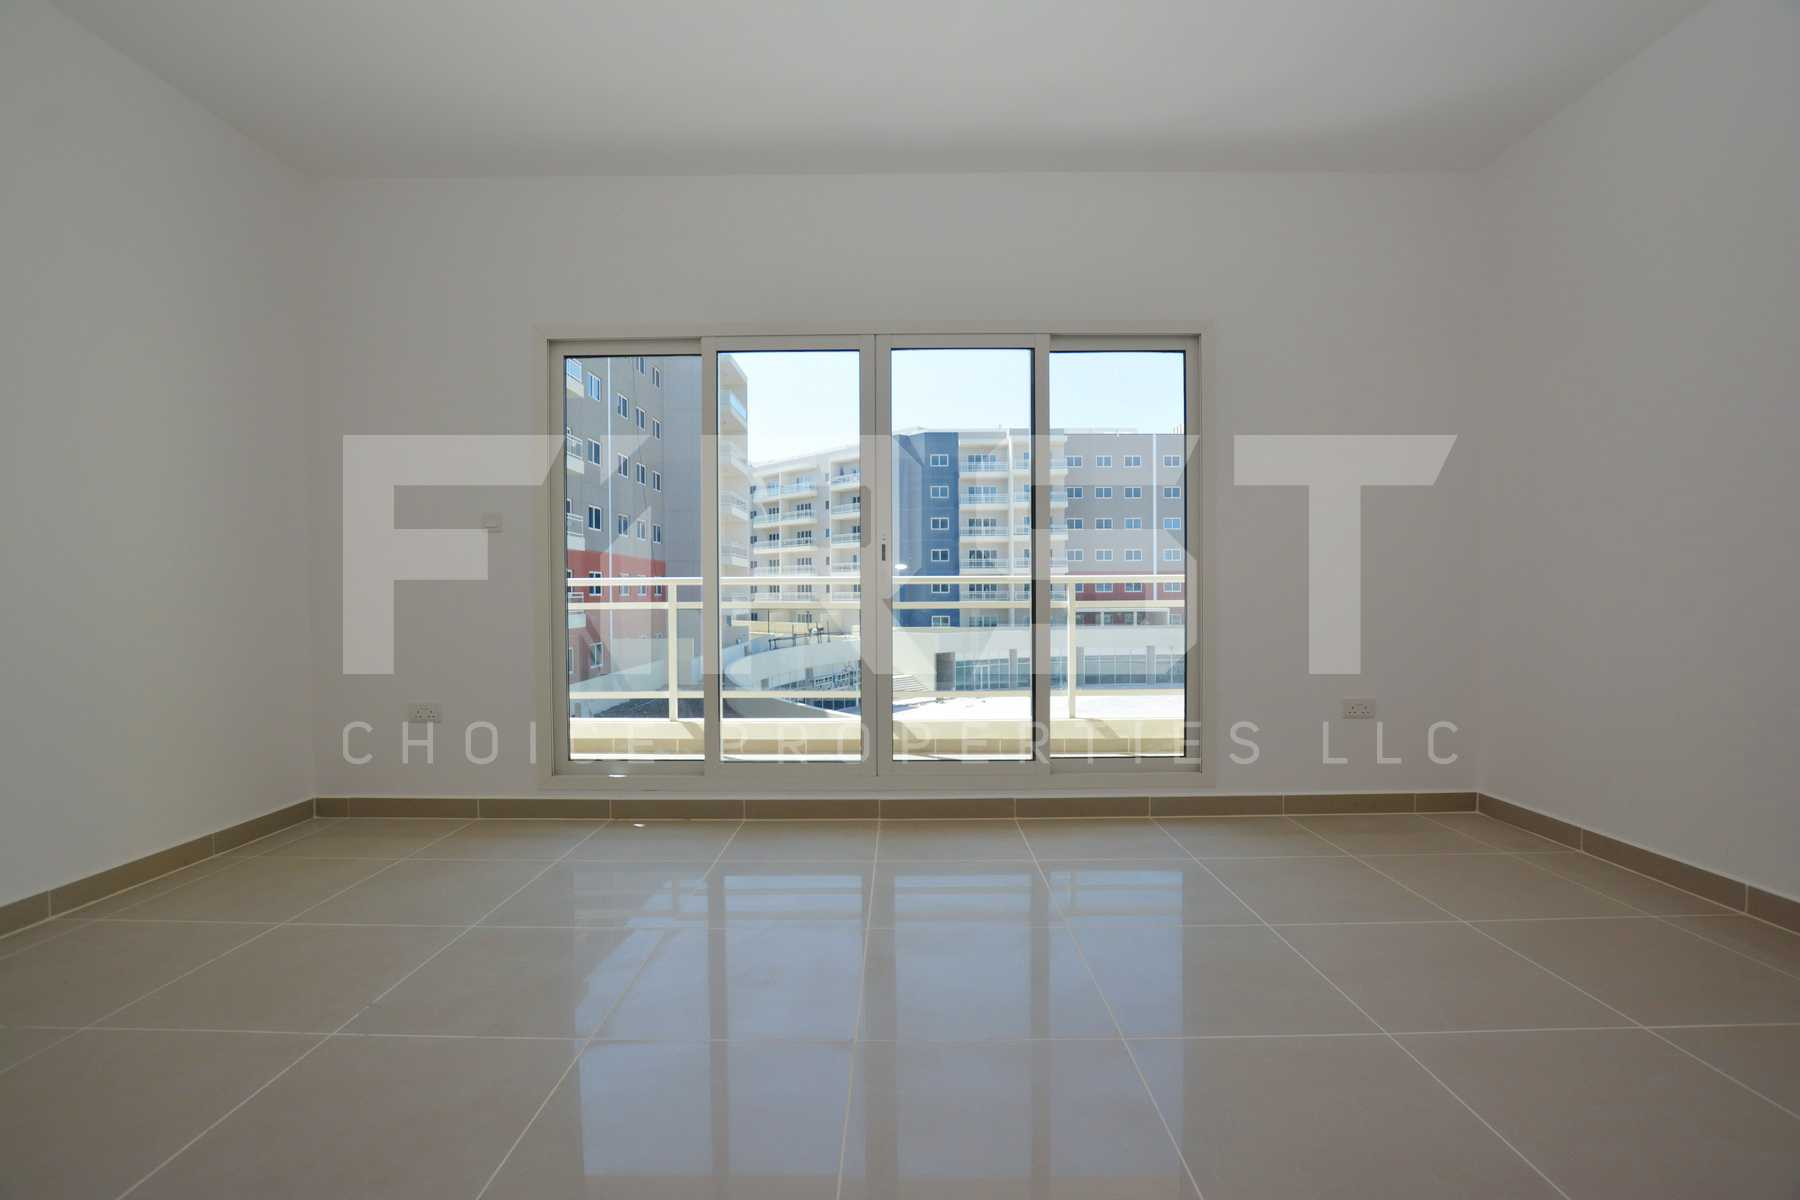 Internal Photo of 1 Bedroom Apartment Type A in Al Reef Downtown Al Reef Abu Dhabi UAE 74 sq.m 796 sq.ft (16).jpg